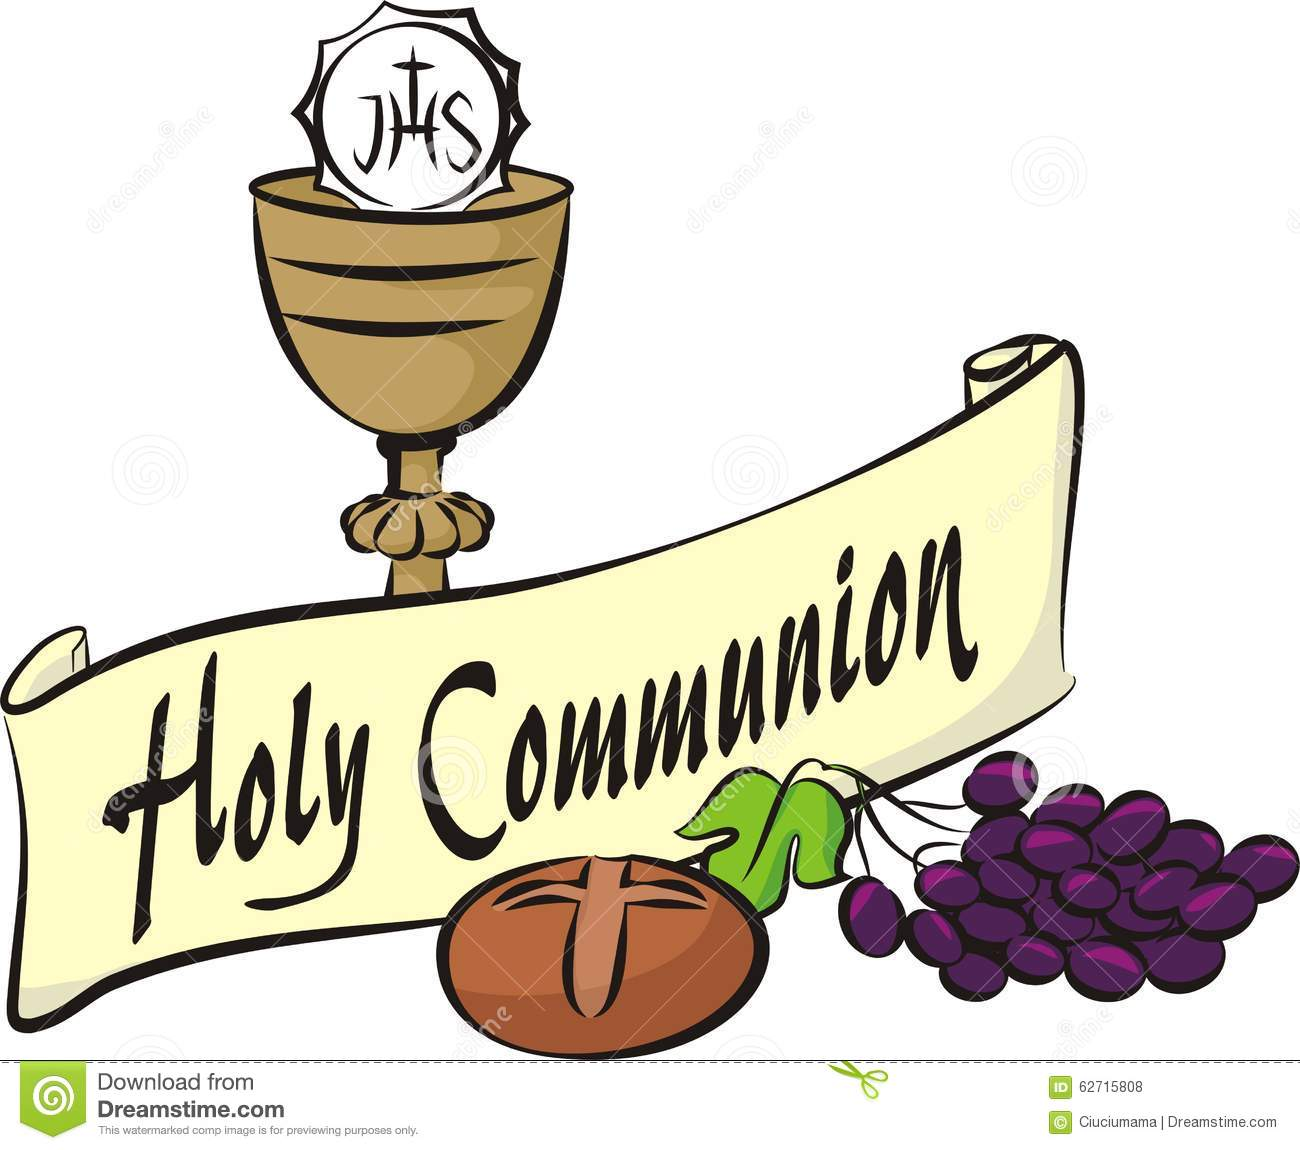 Holy communion stock vector. Illustration of christian ...